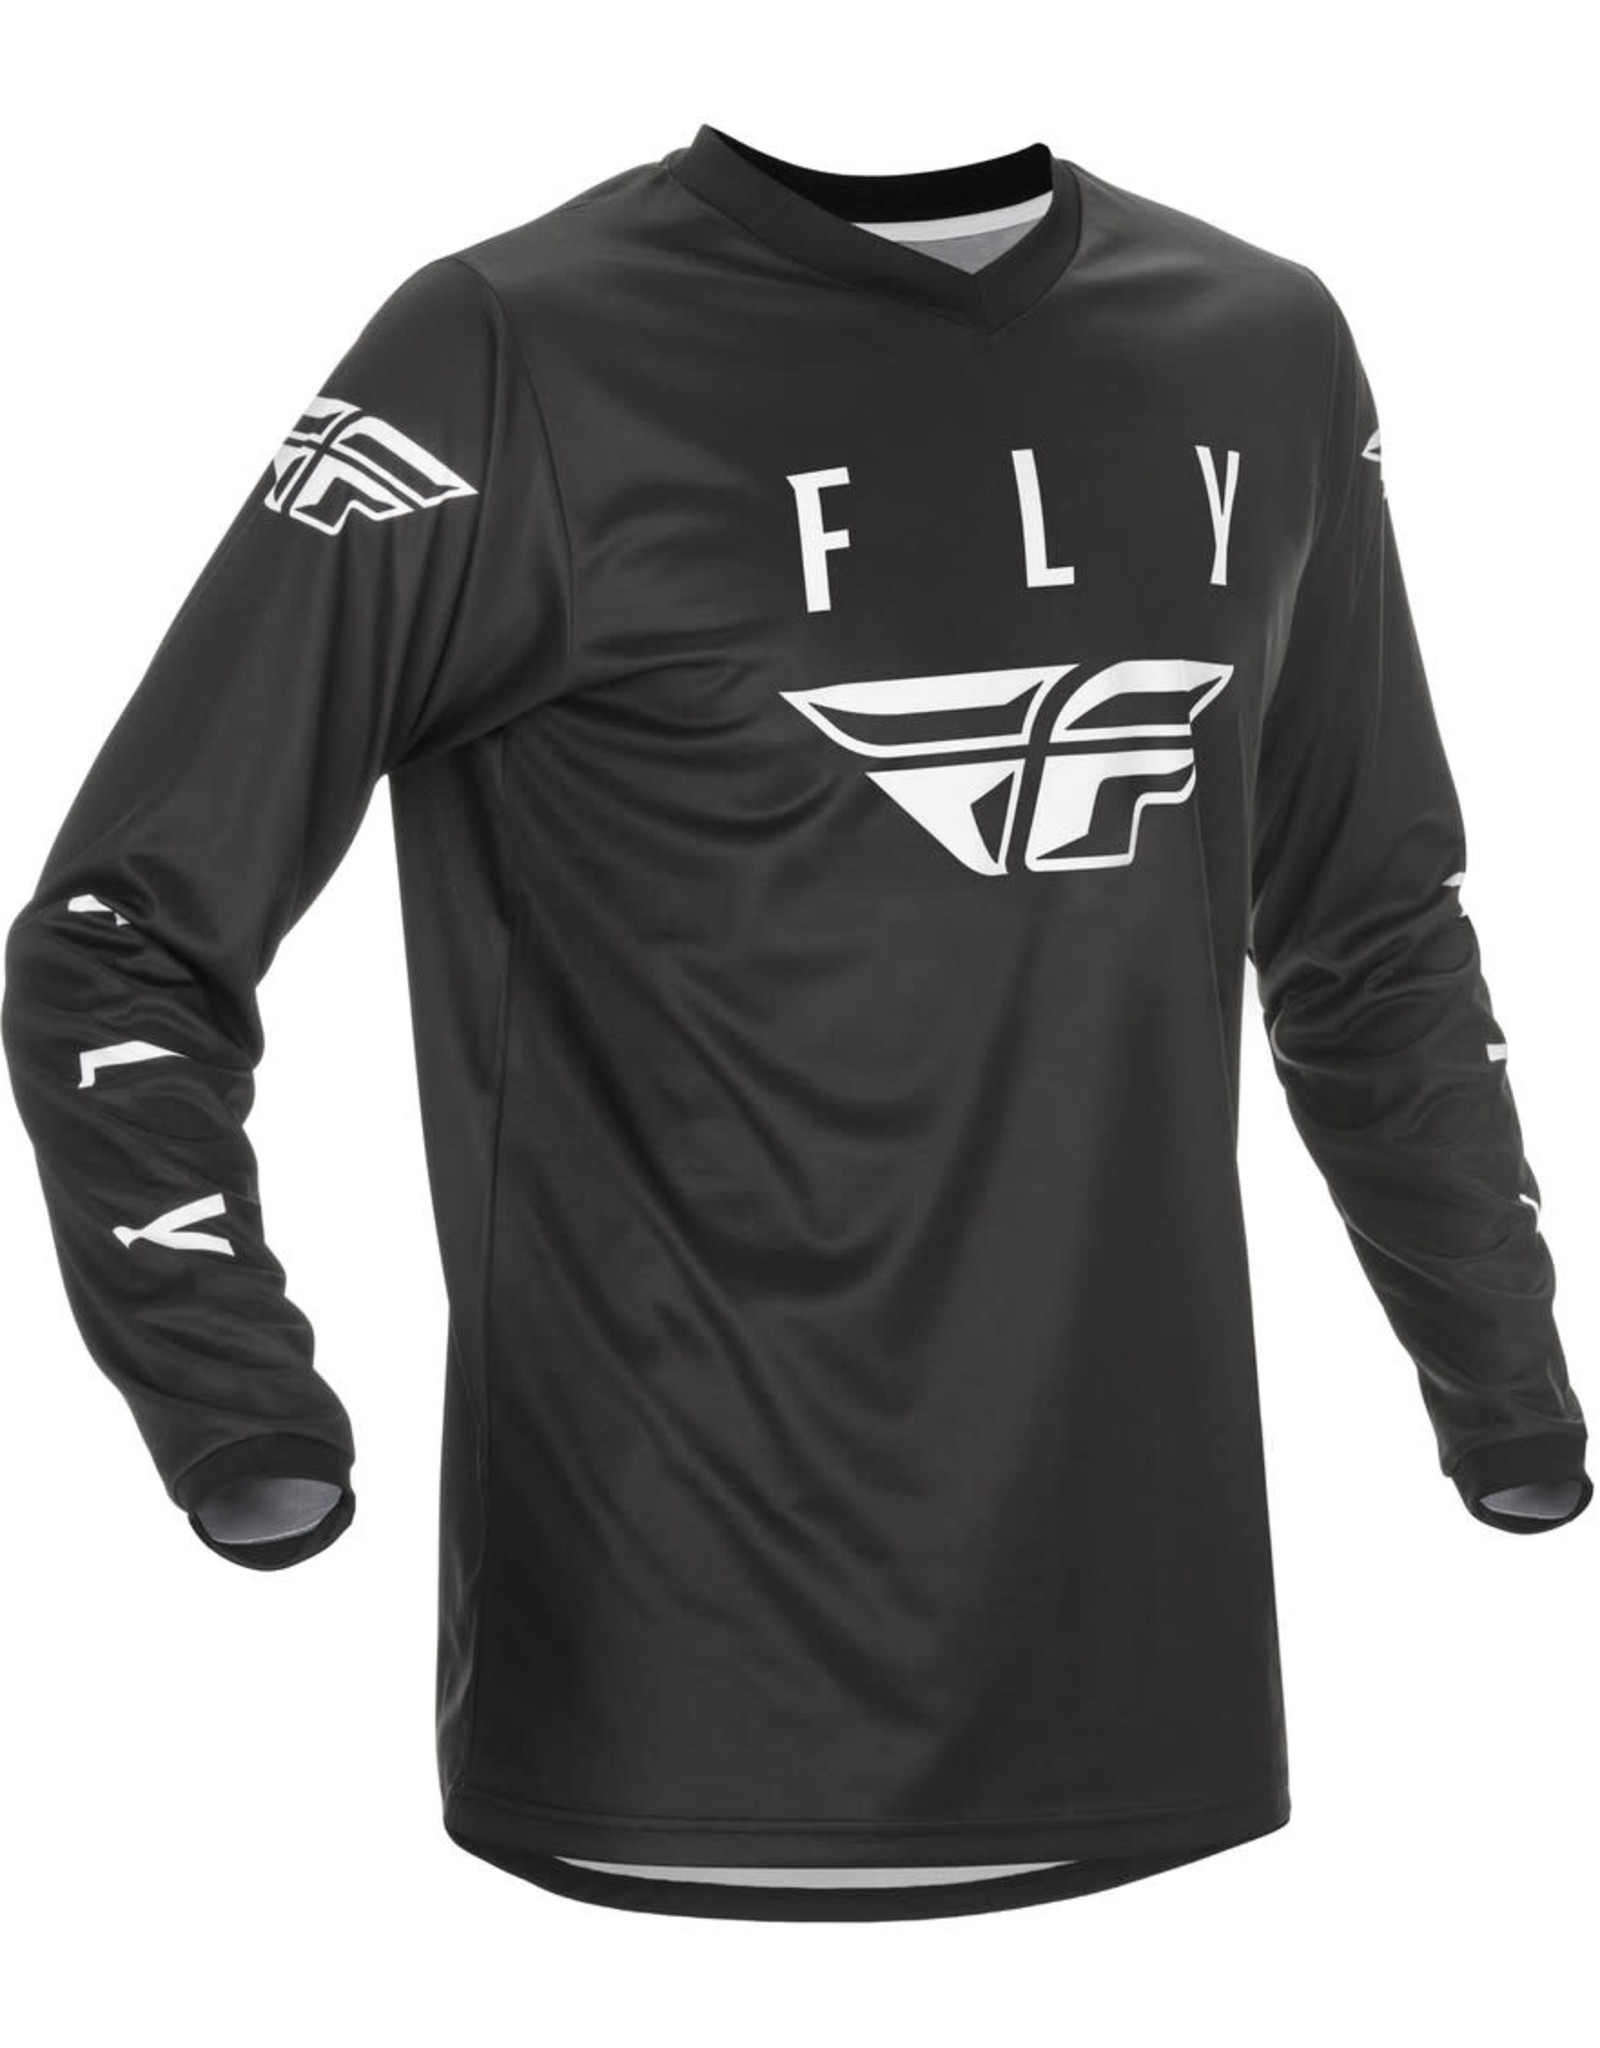 FLY RACING 2021 Fly Racing Universal Jersey Black/White